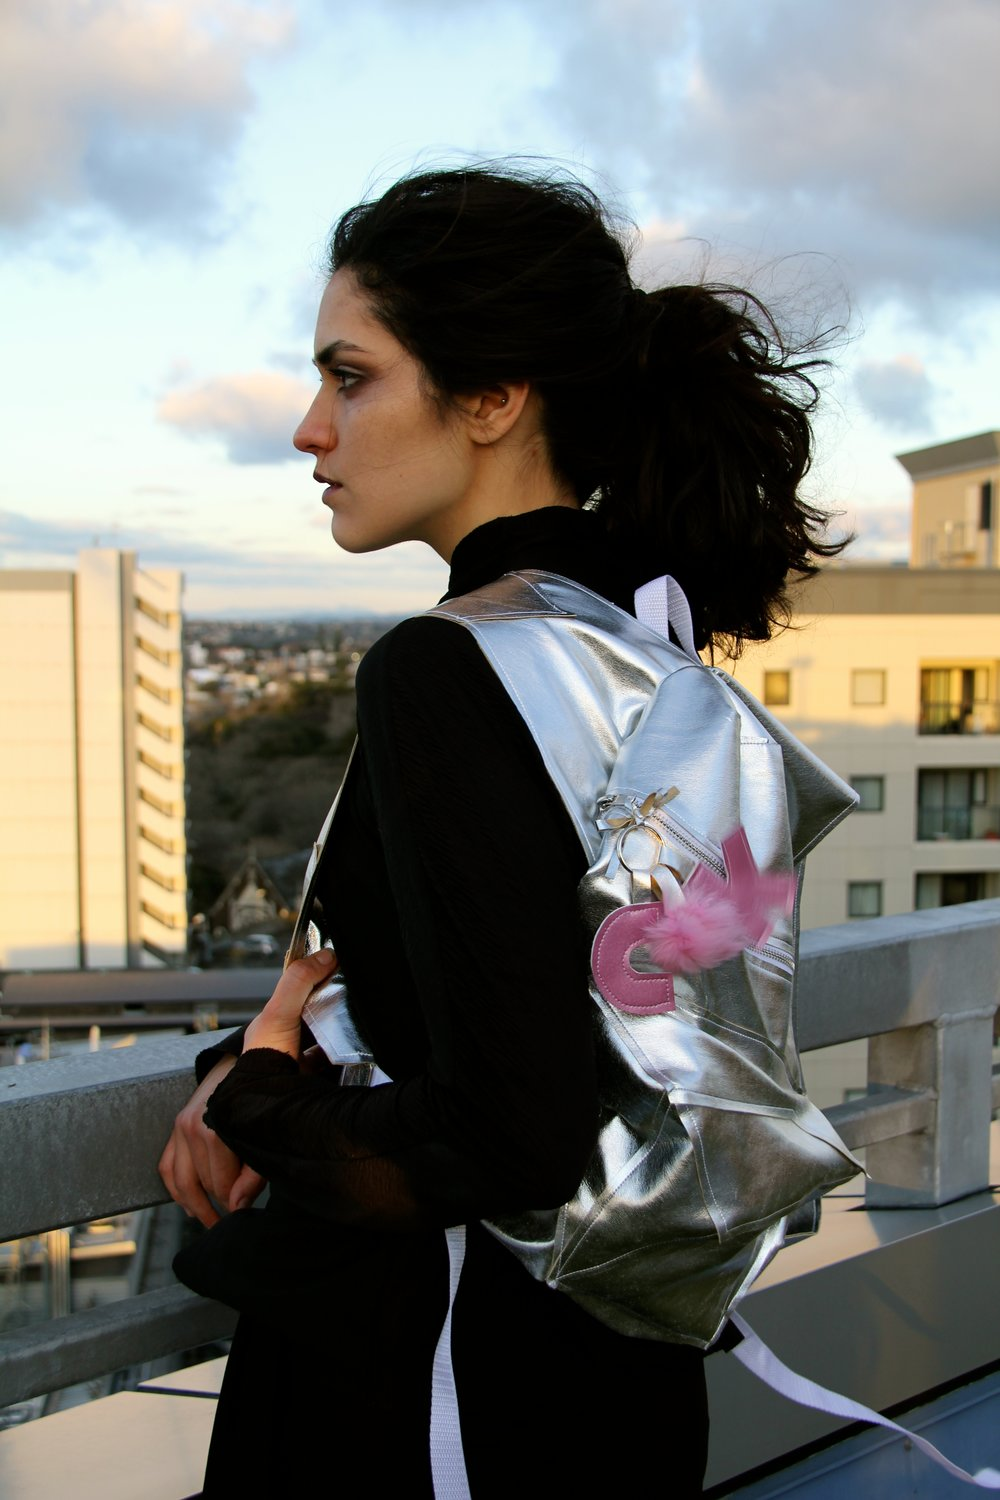 Camille Richard & Kendall Hayes Silver Cubism Backpack 2015 image 6.jpg